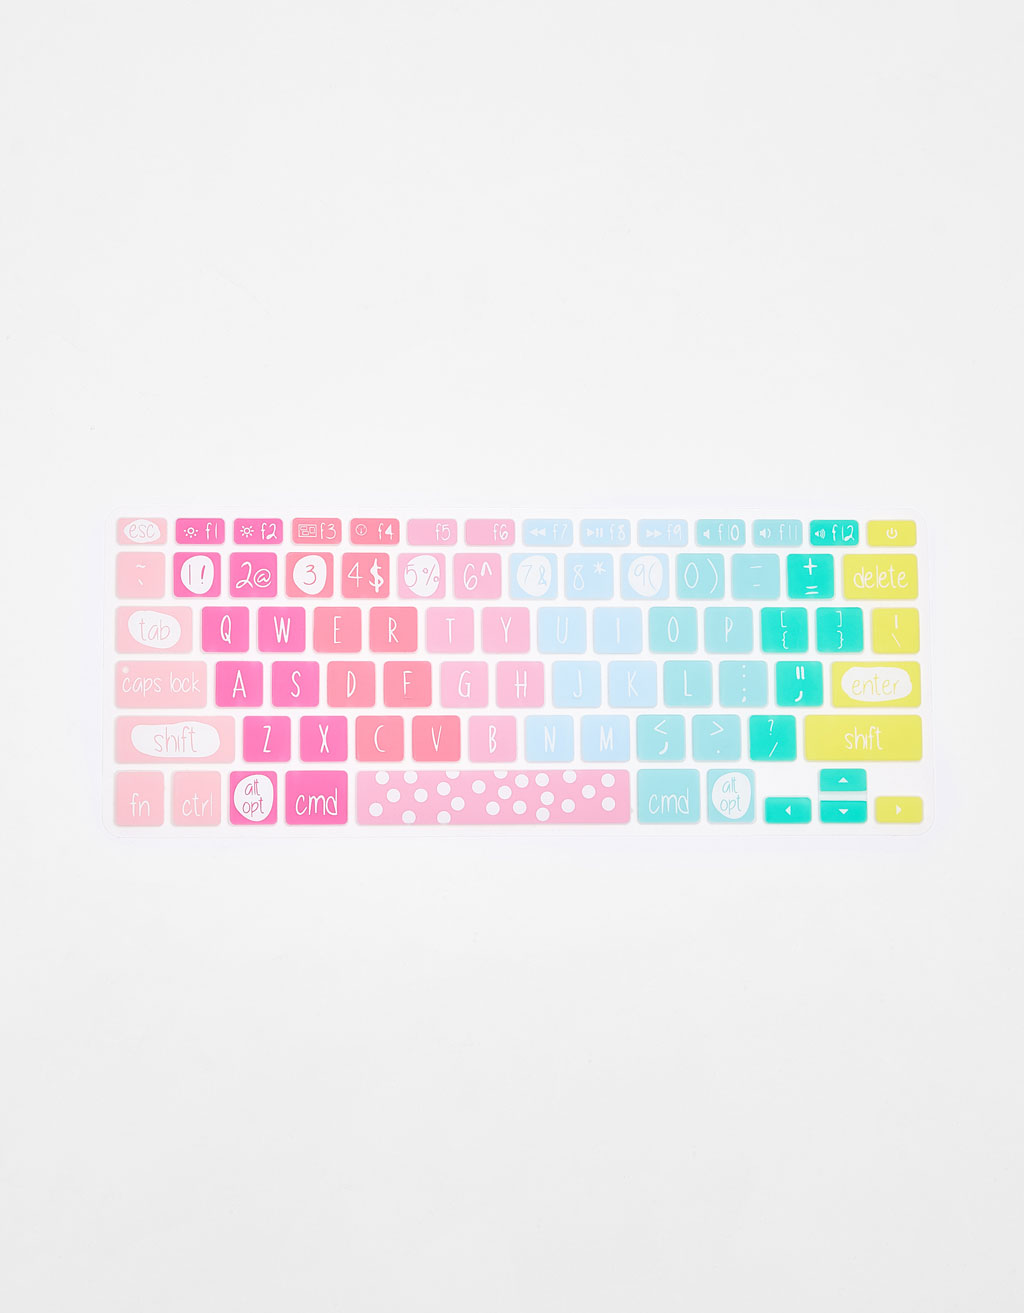 Keyboard protector (international keyboard)